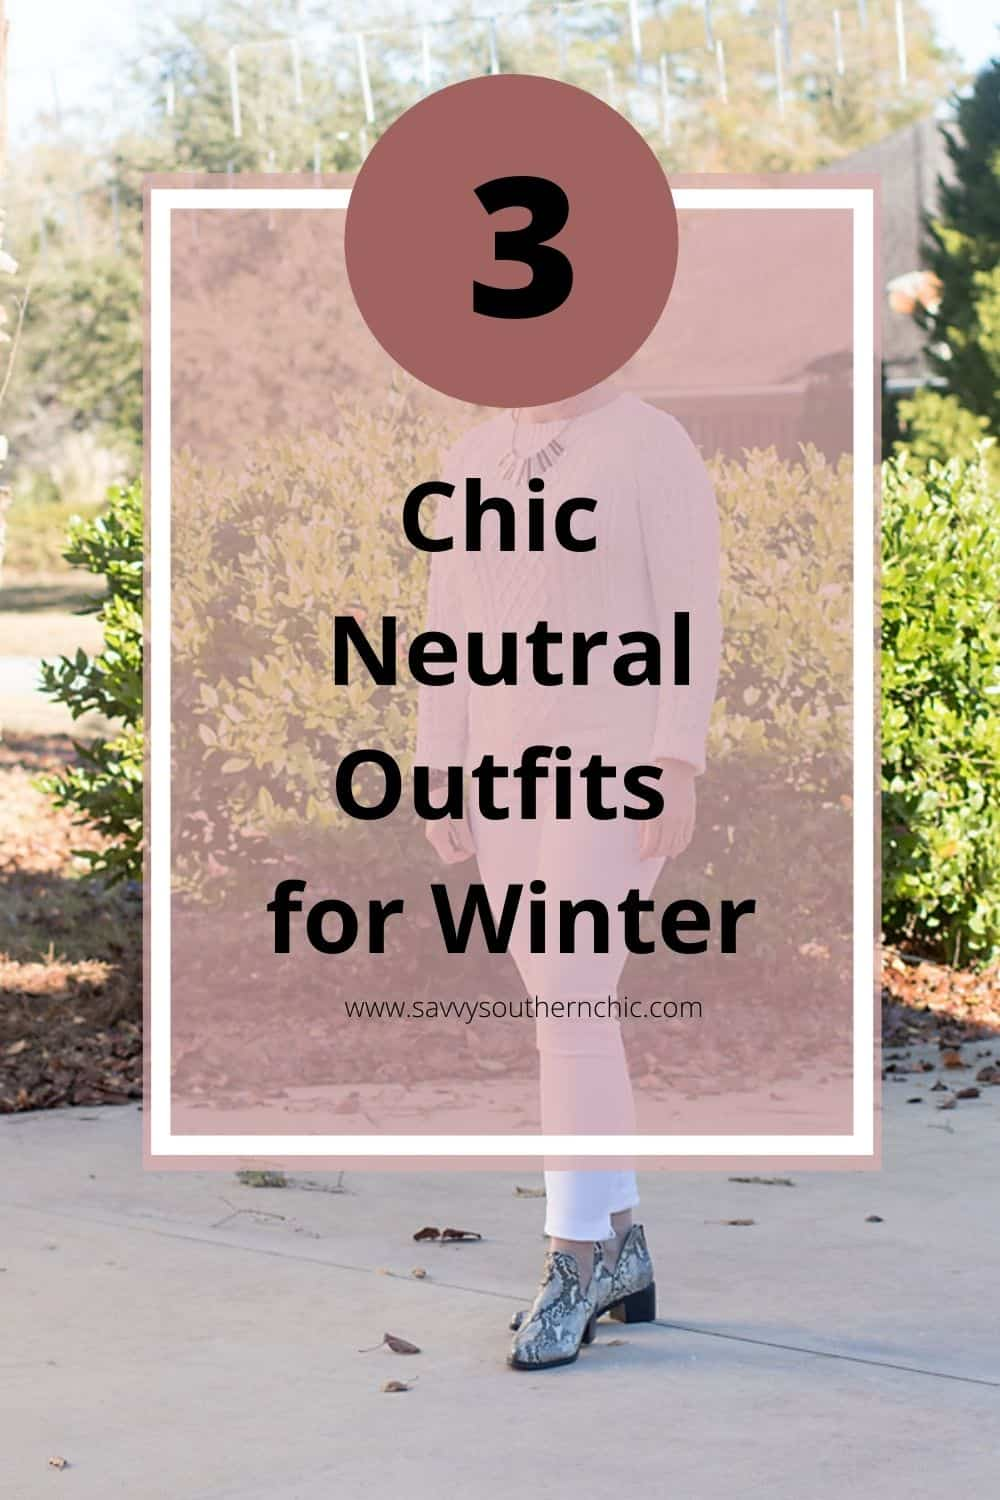 How to Wear Neutral Colors: 3 Chic Neutral Color Outfits for Winter